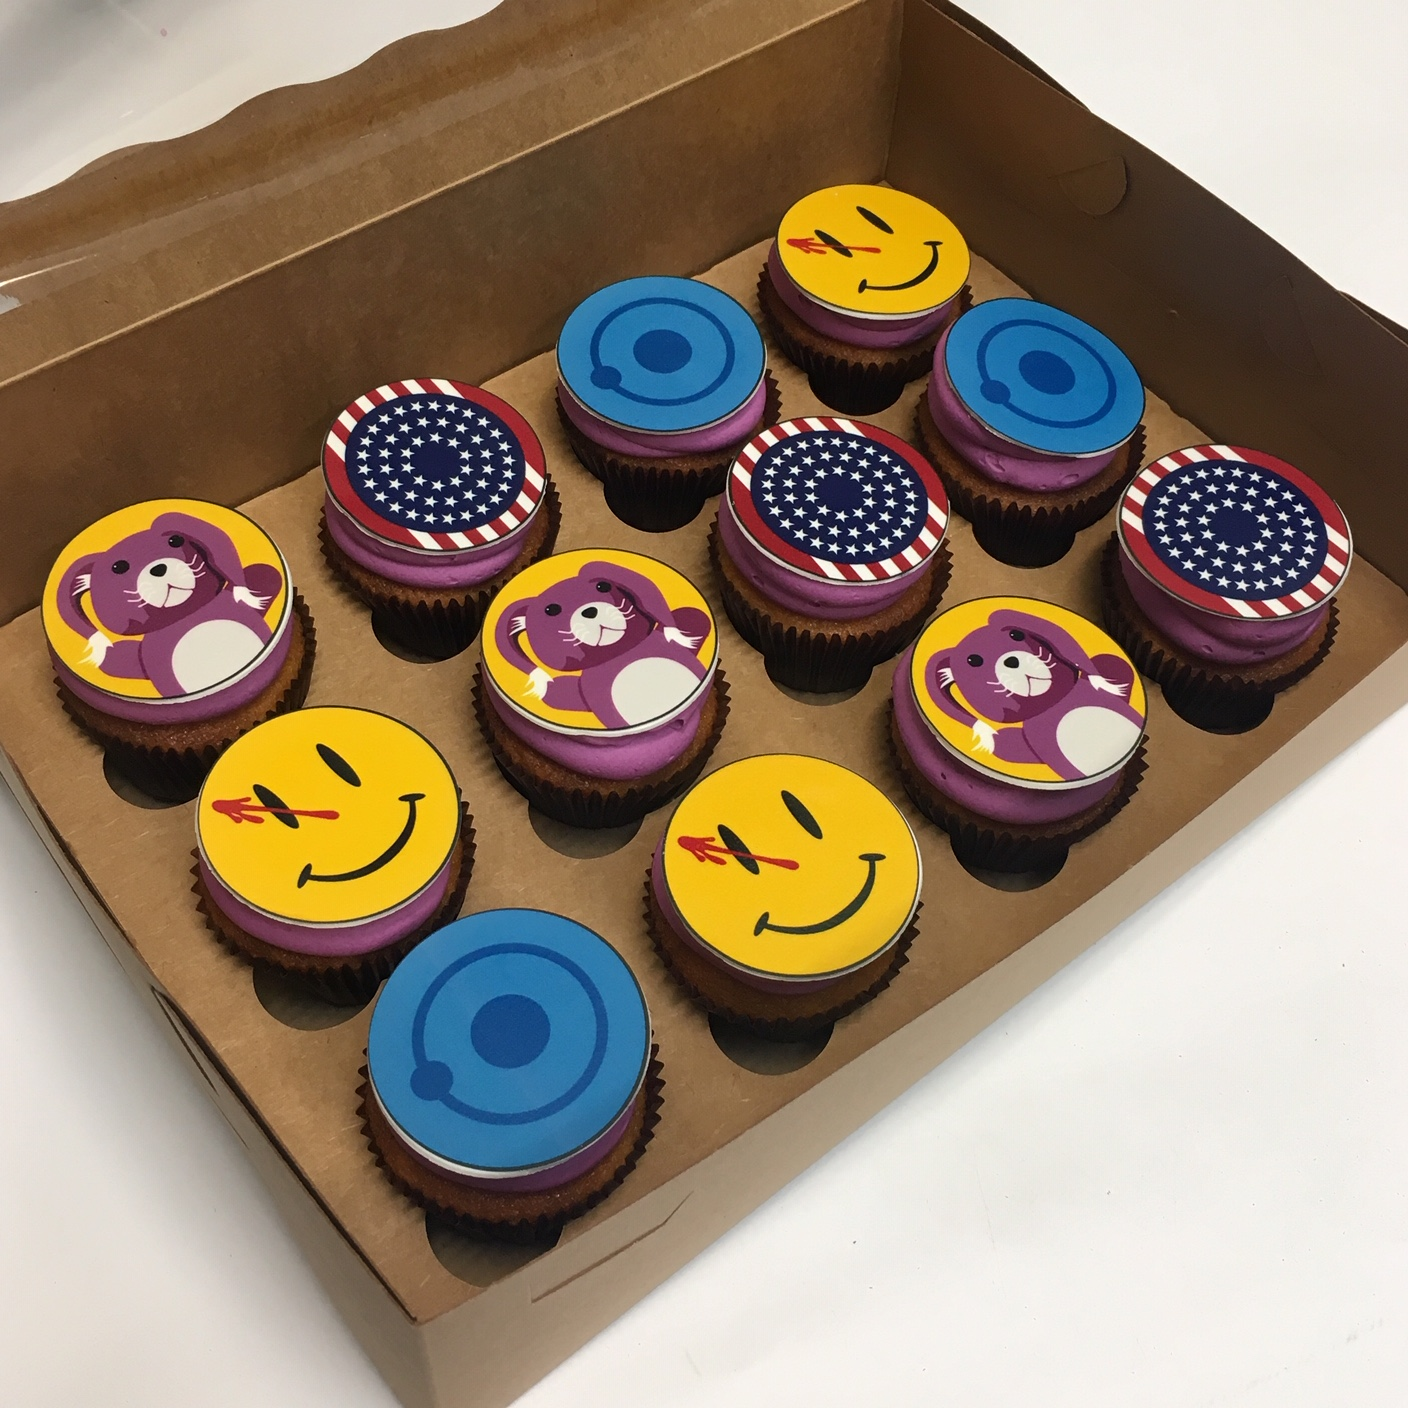 The Watchmen Cupcakes